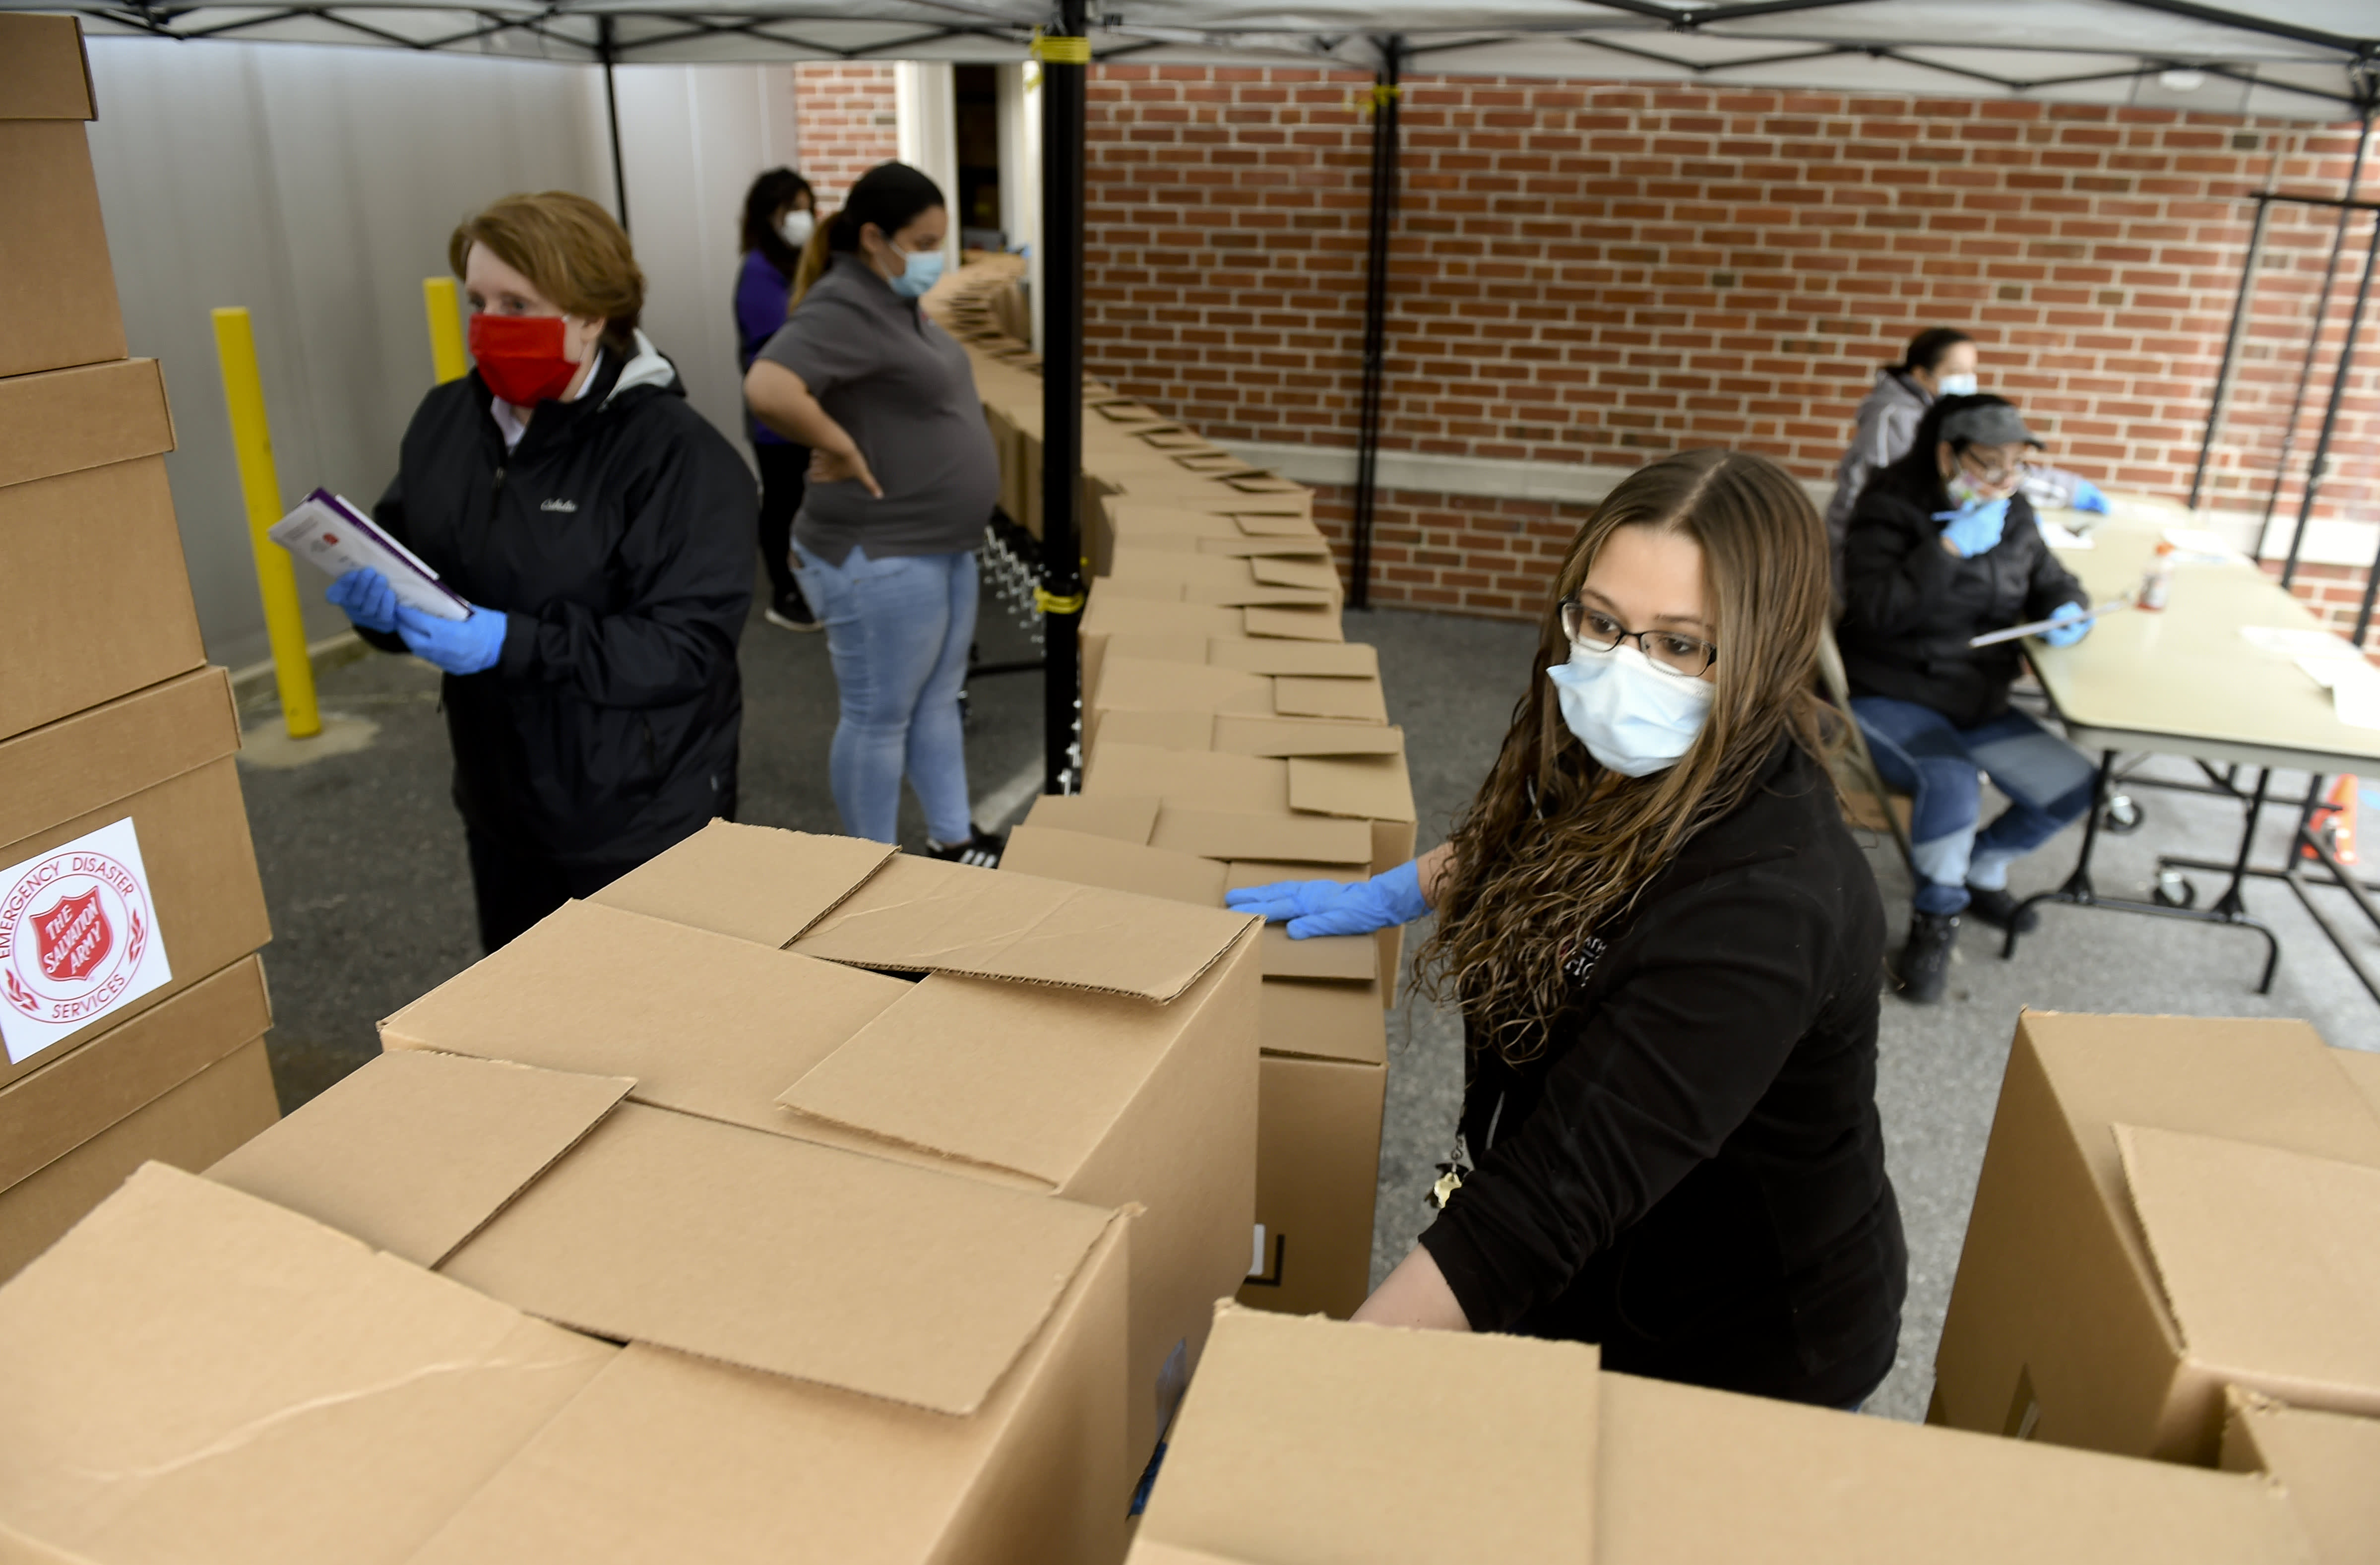 Expanded unemployment benefits may bump people from welfare, other aid